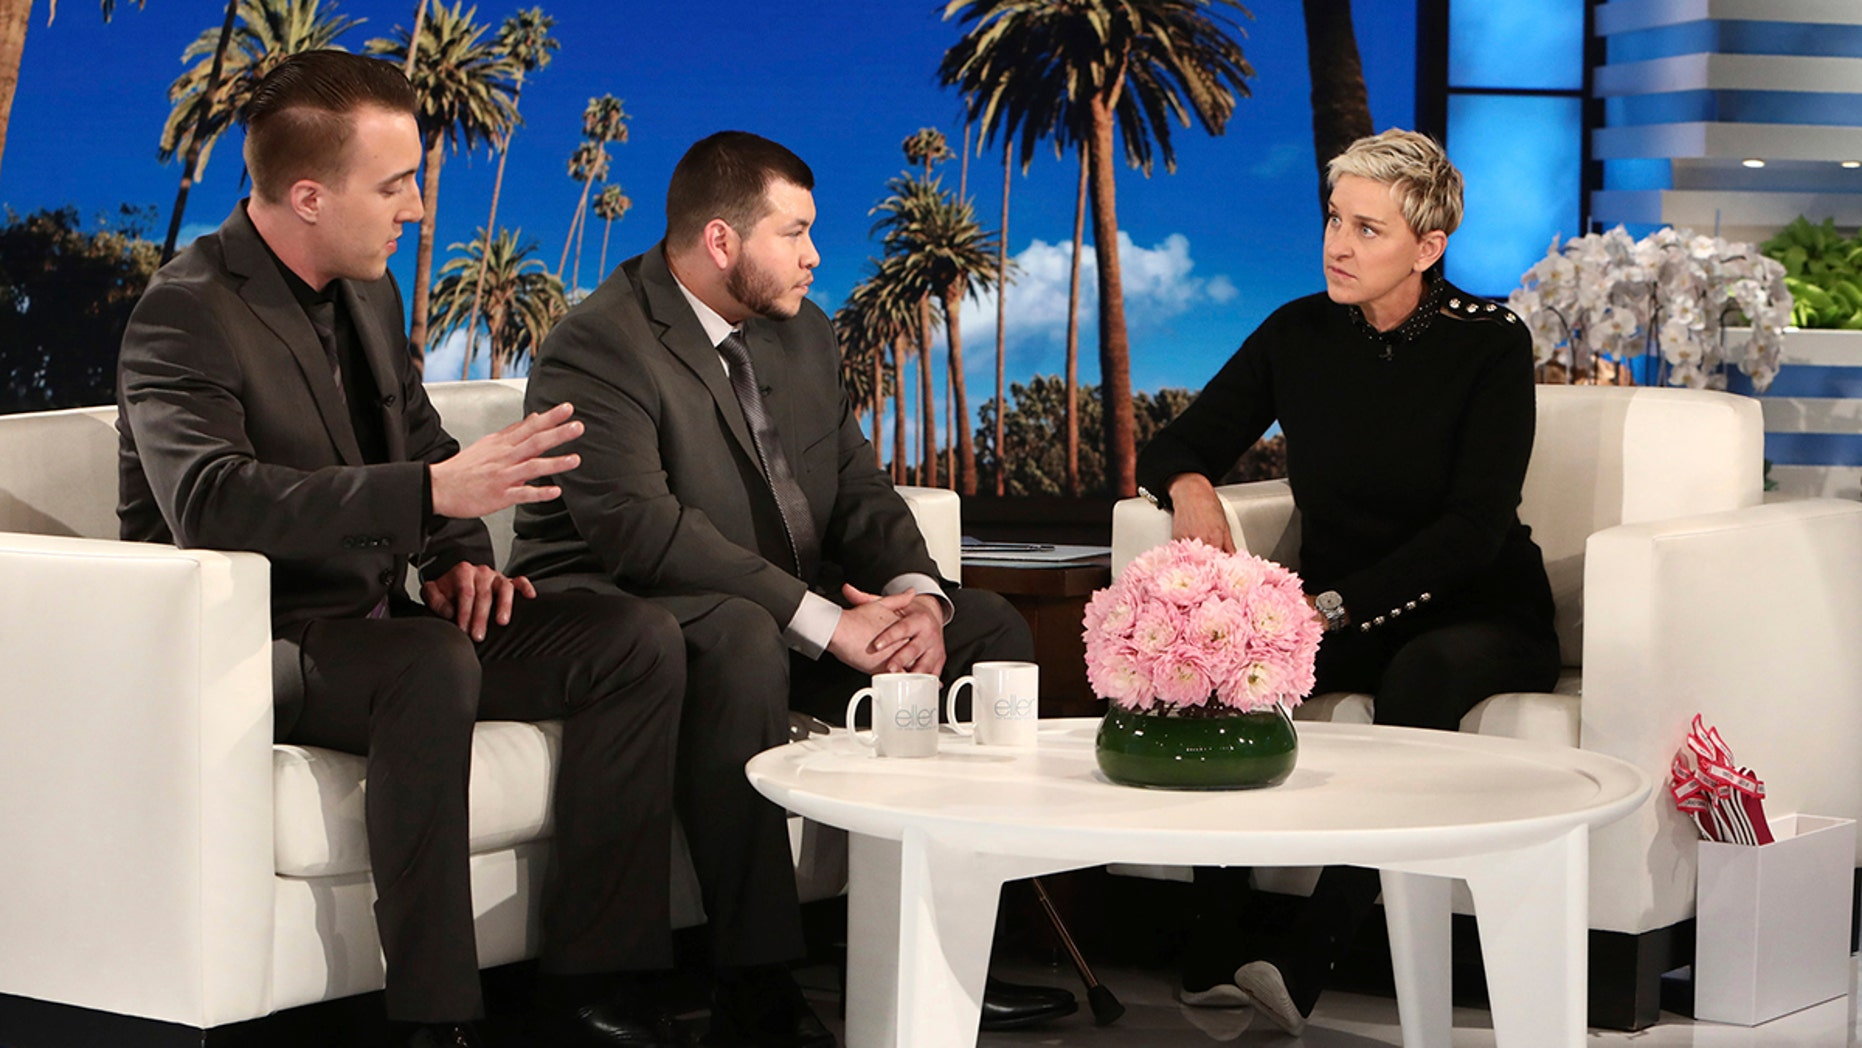 Las Vegas hotel employees Stephen Schuck, left, and Jesus Campos talk with TV host Ellen DeGeneres during a show taped earlier this month.